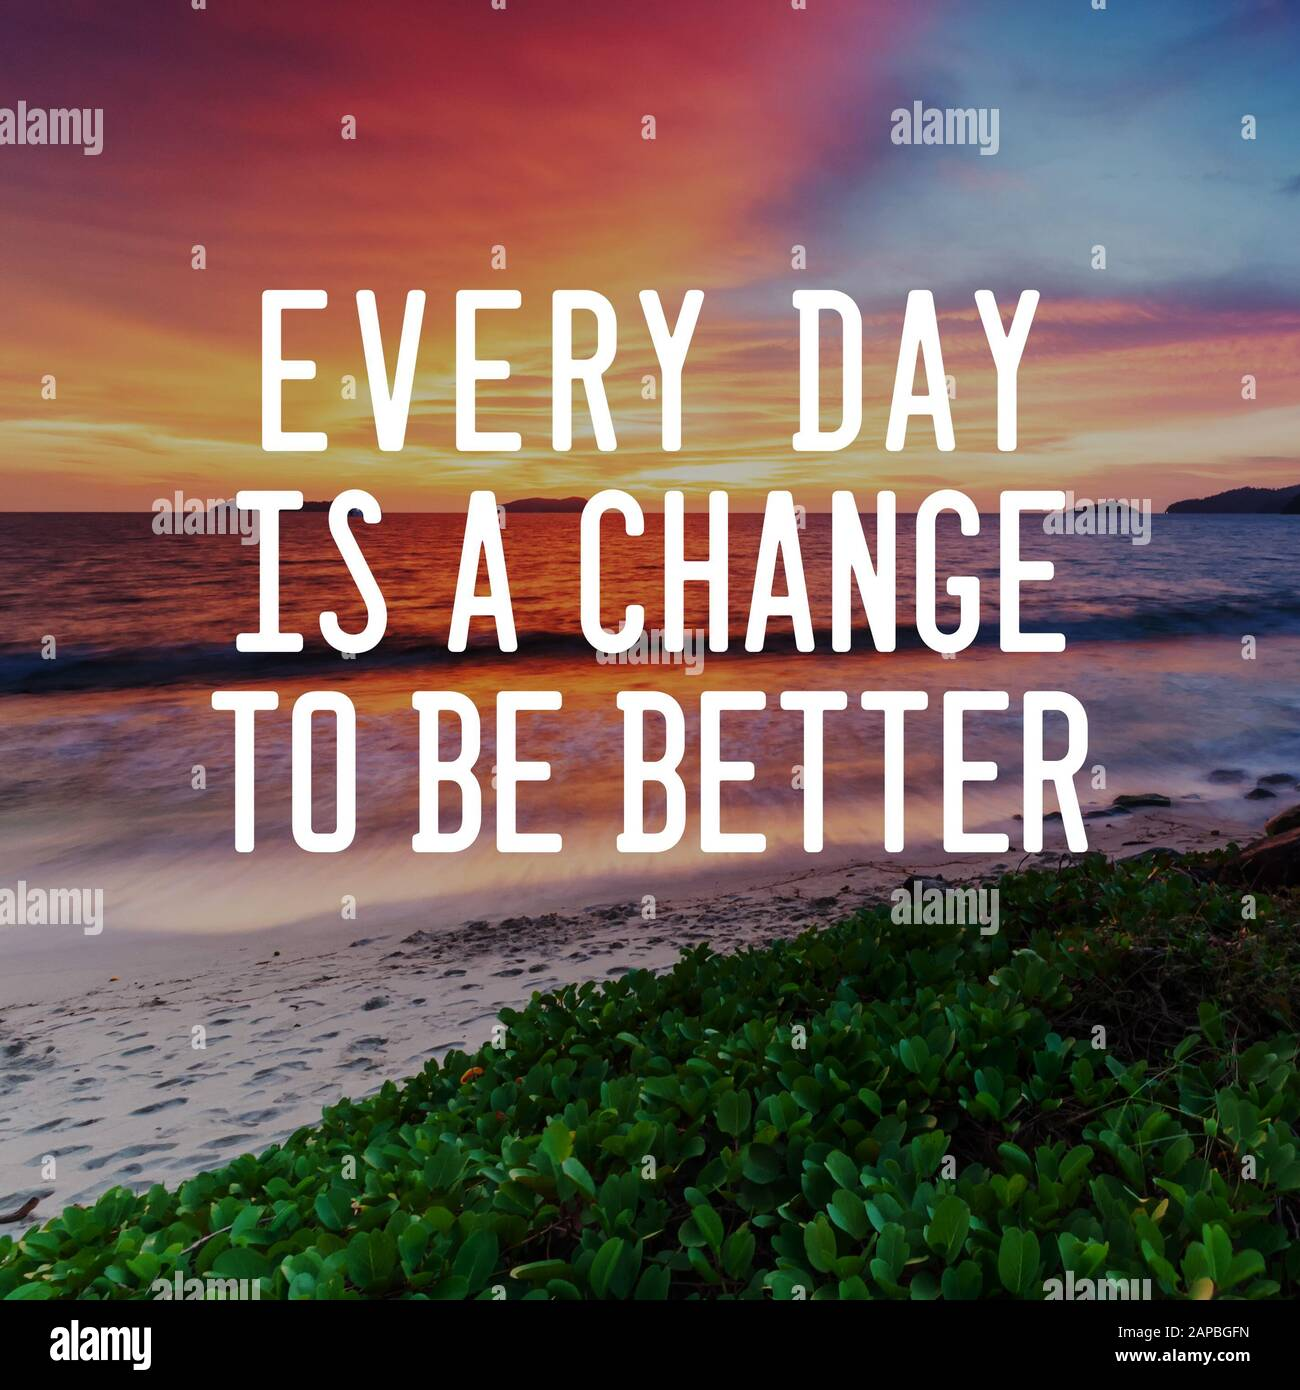 Motivational And Life Inspirational Quotes Every Day Is A Change To Be Better Blurry Background Stock Photo Alamy